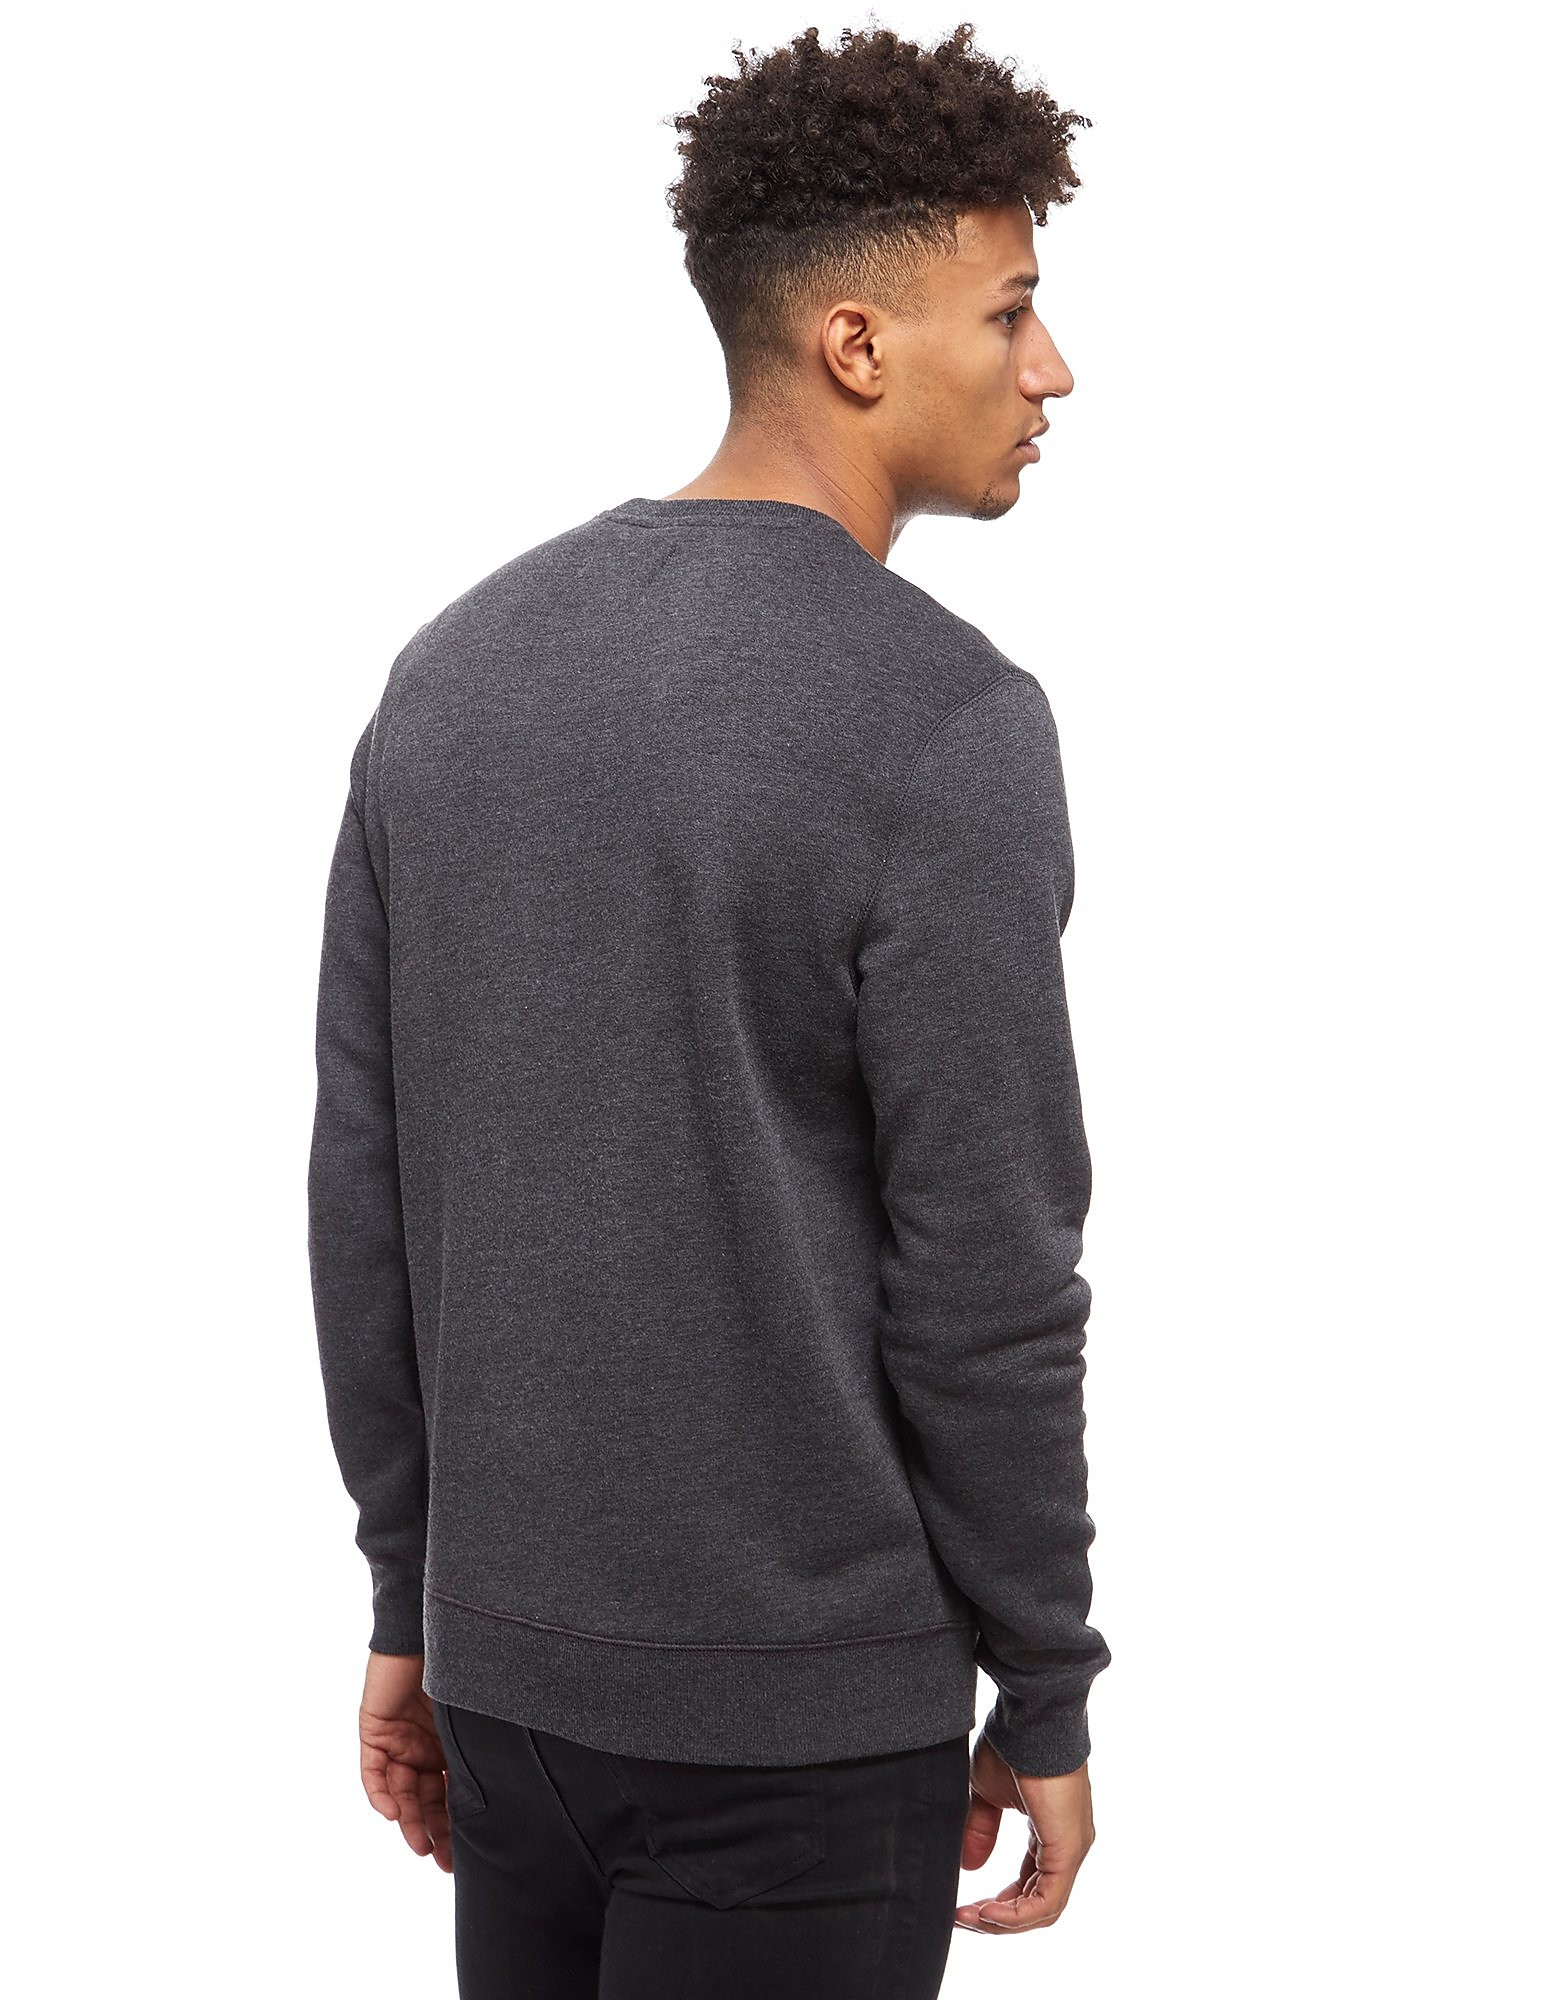 Original Penguin Secret Sam Crew Sweatshirt